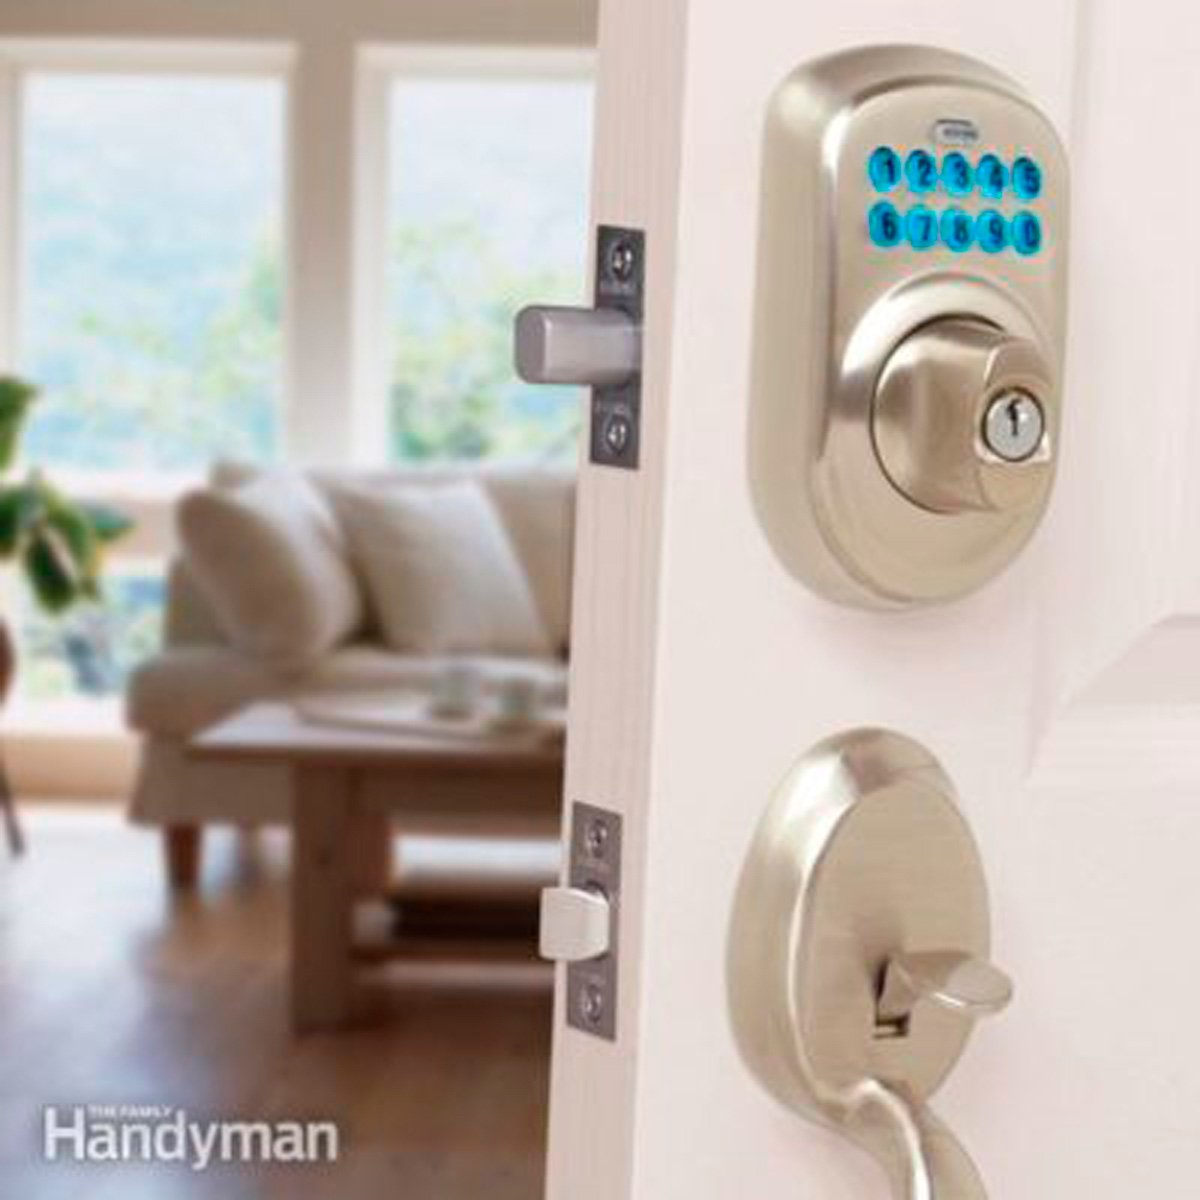 A keyless entry system—or smart lock—lets you monitor access to and from your house. #cooltech #techtips  http://cpix.me/a/92292975pic.twitter.com/AyuaSEQMzG